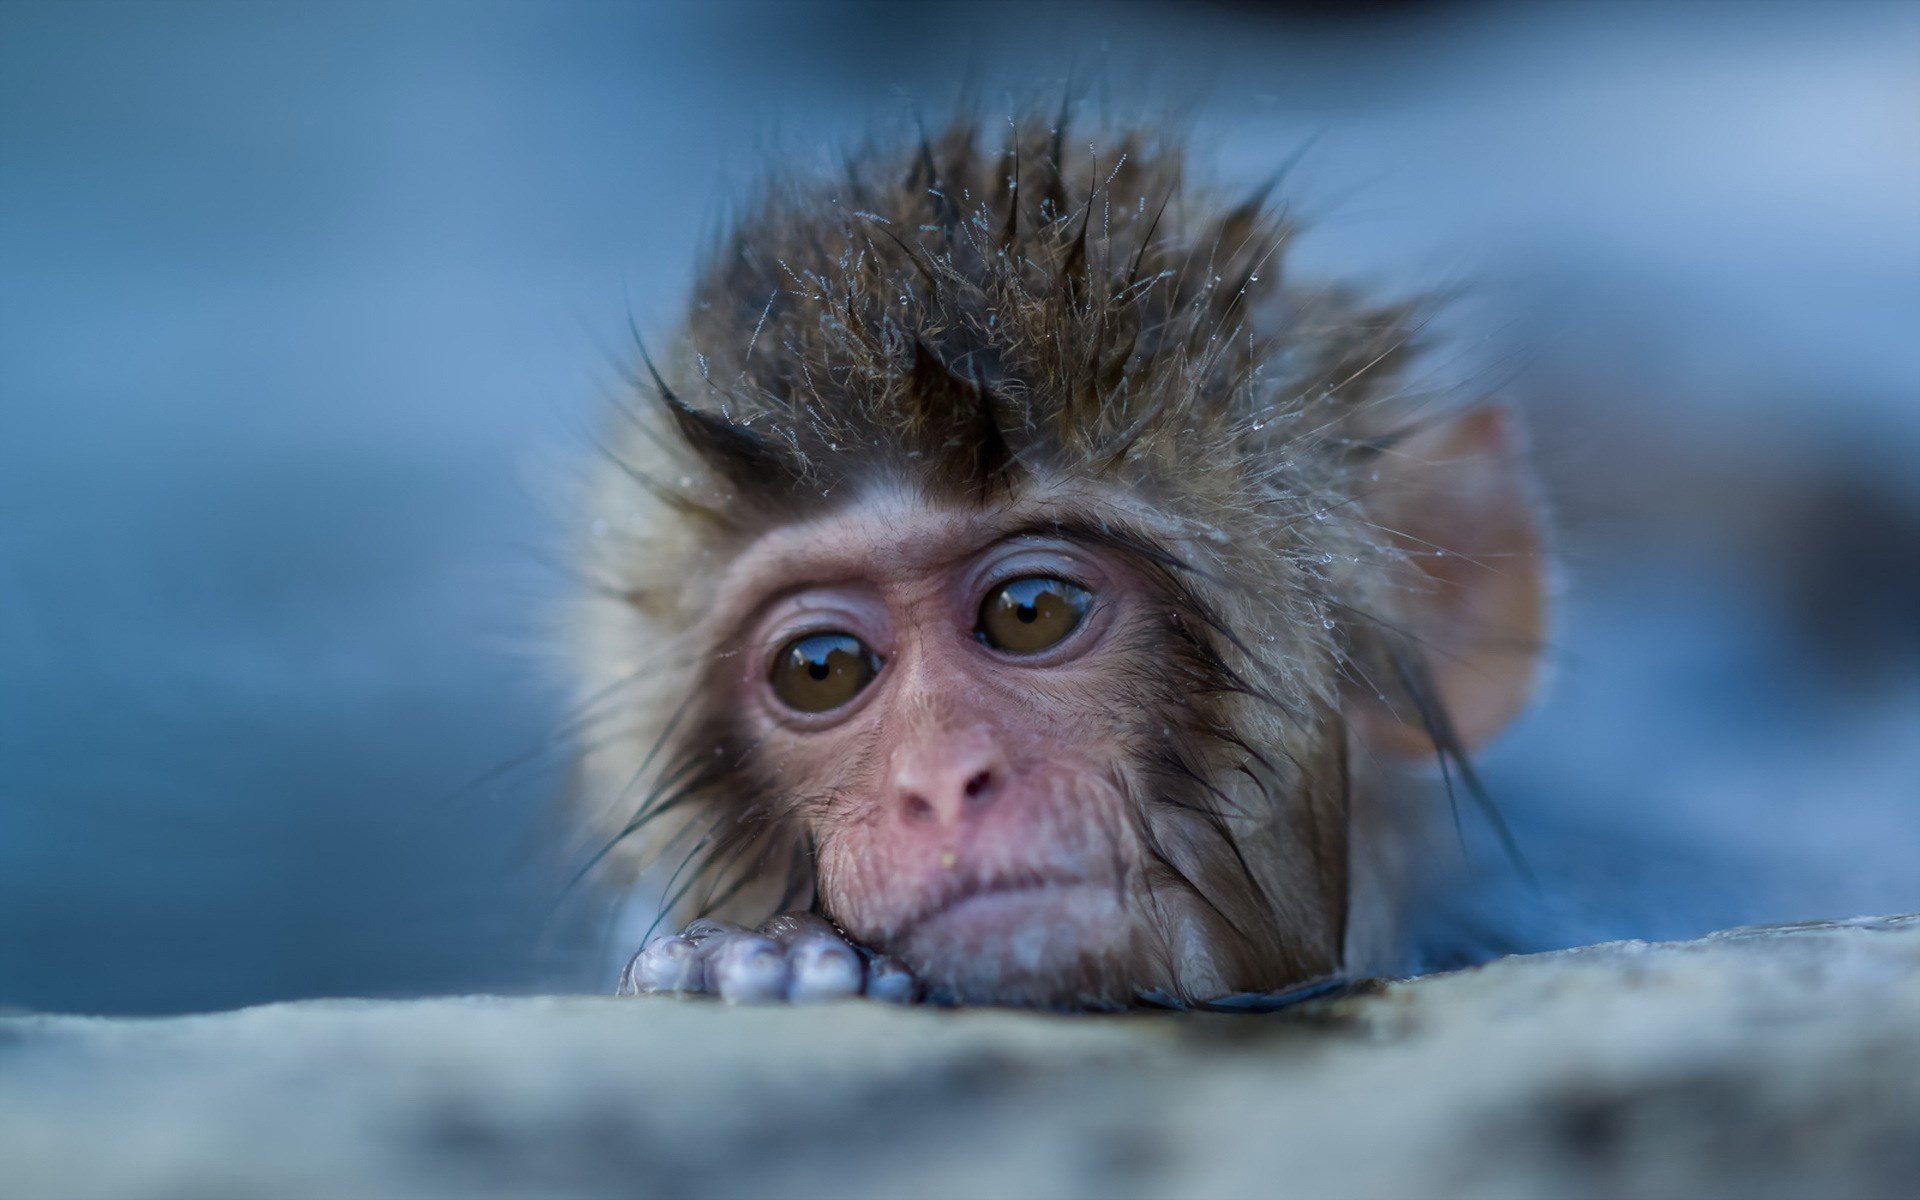 free wallpaper and screensavers for japanese macaque, (228 kB)